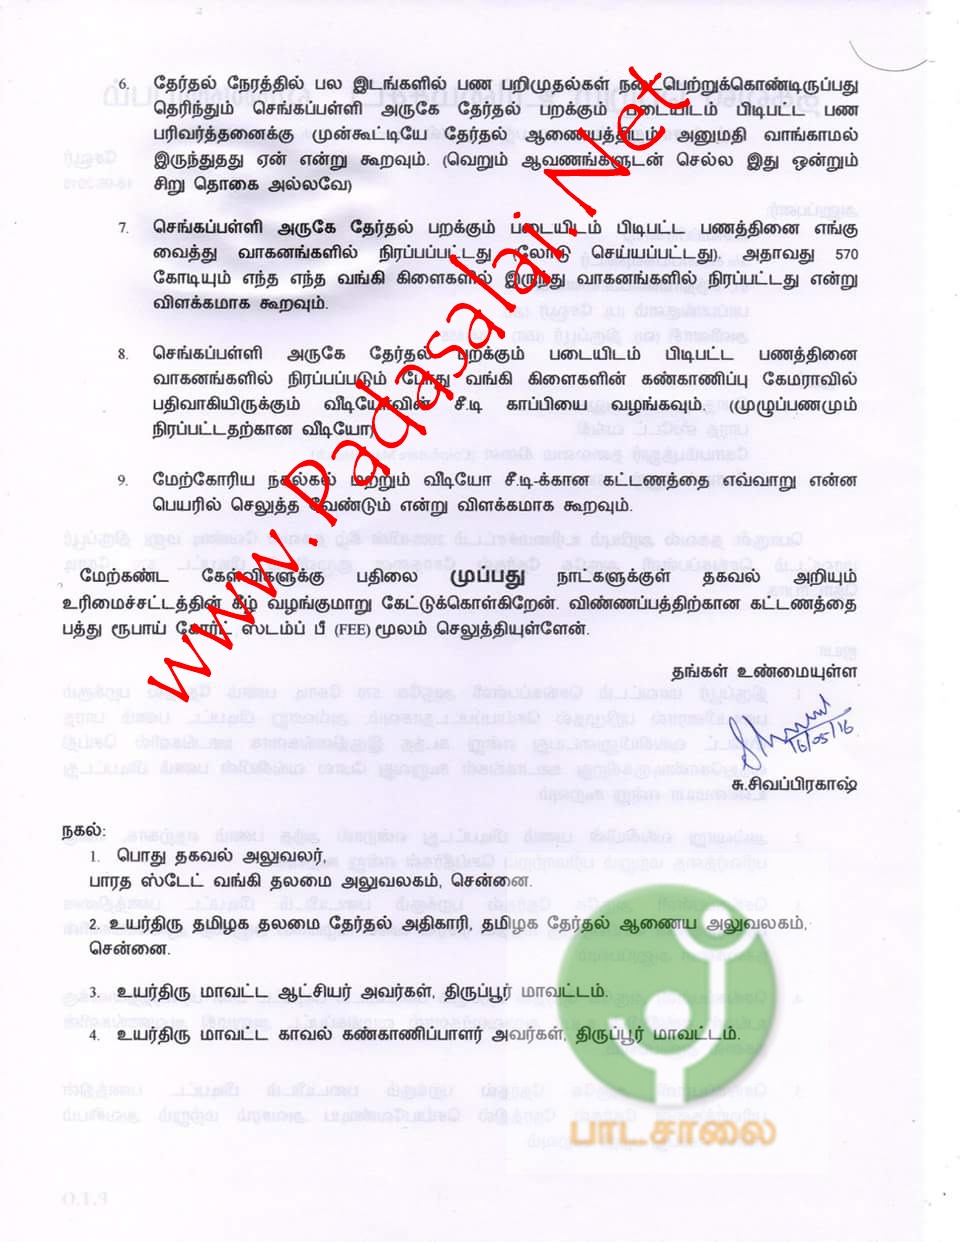 570 crore ceased regarding rti letter click here download rti letter in pdf format spiritdancerdesigns Image collections